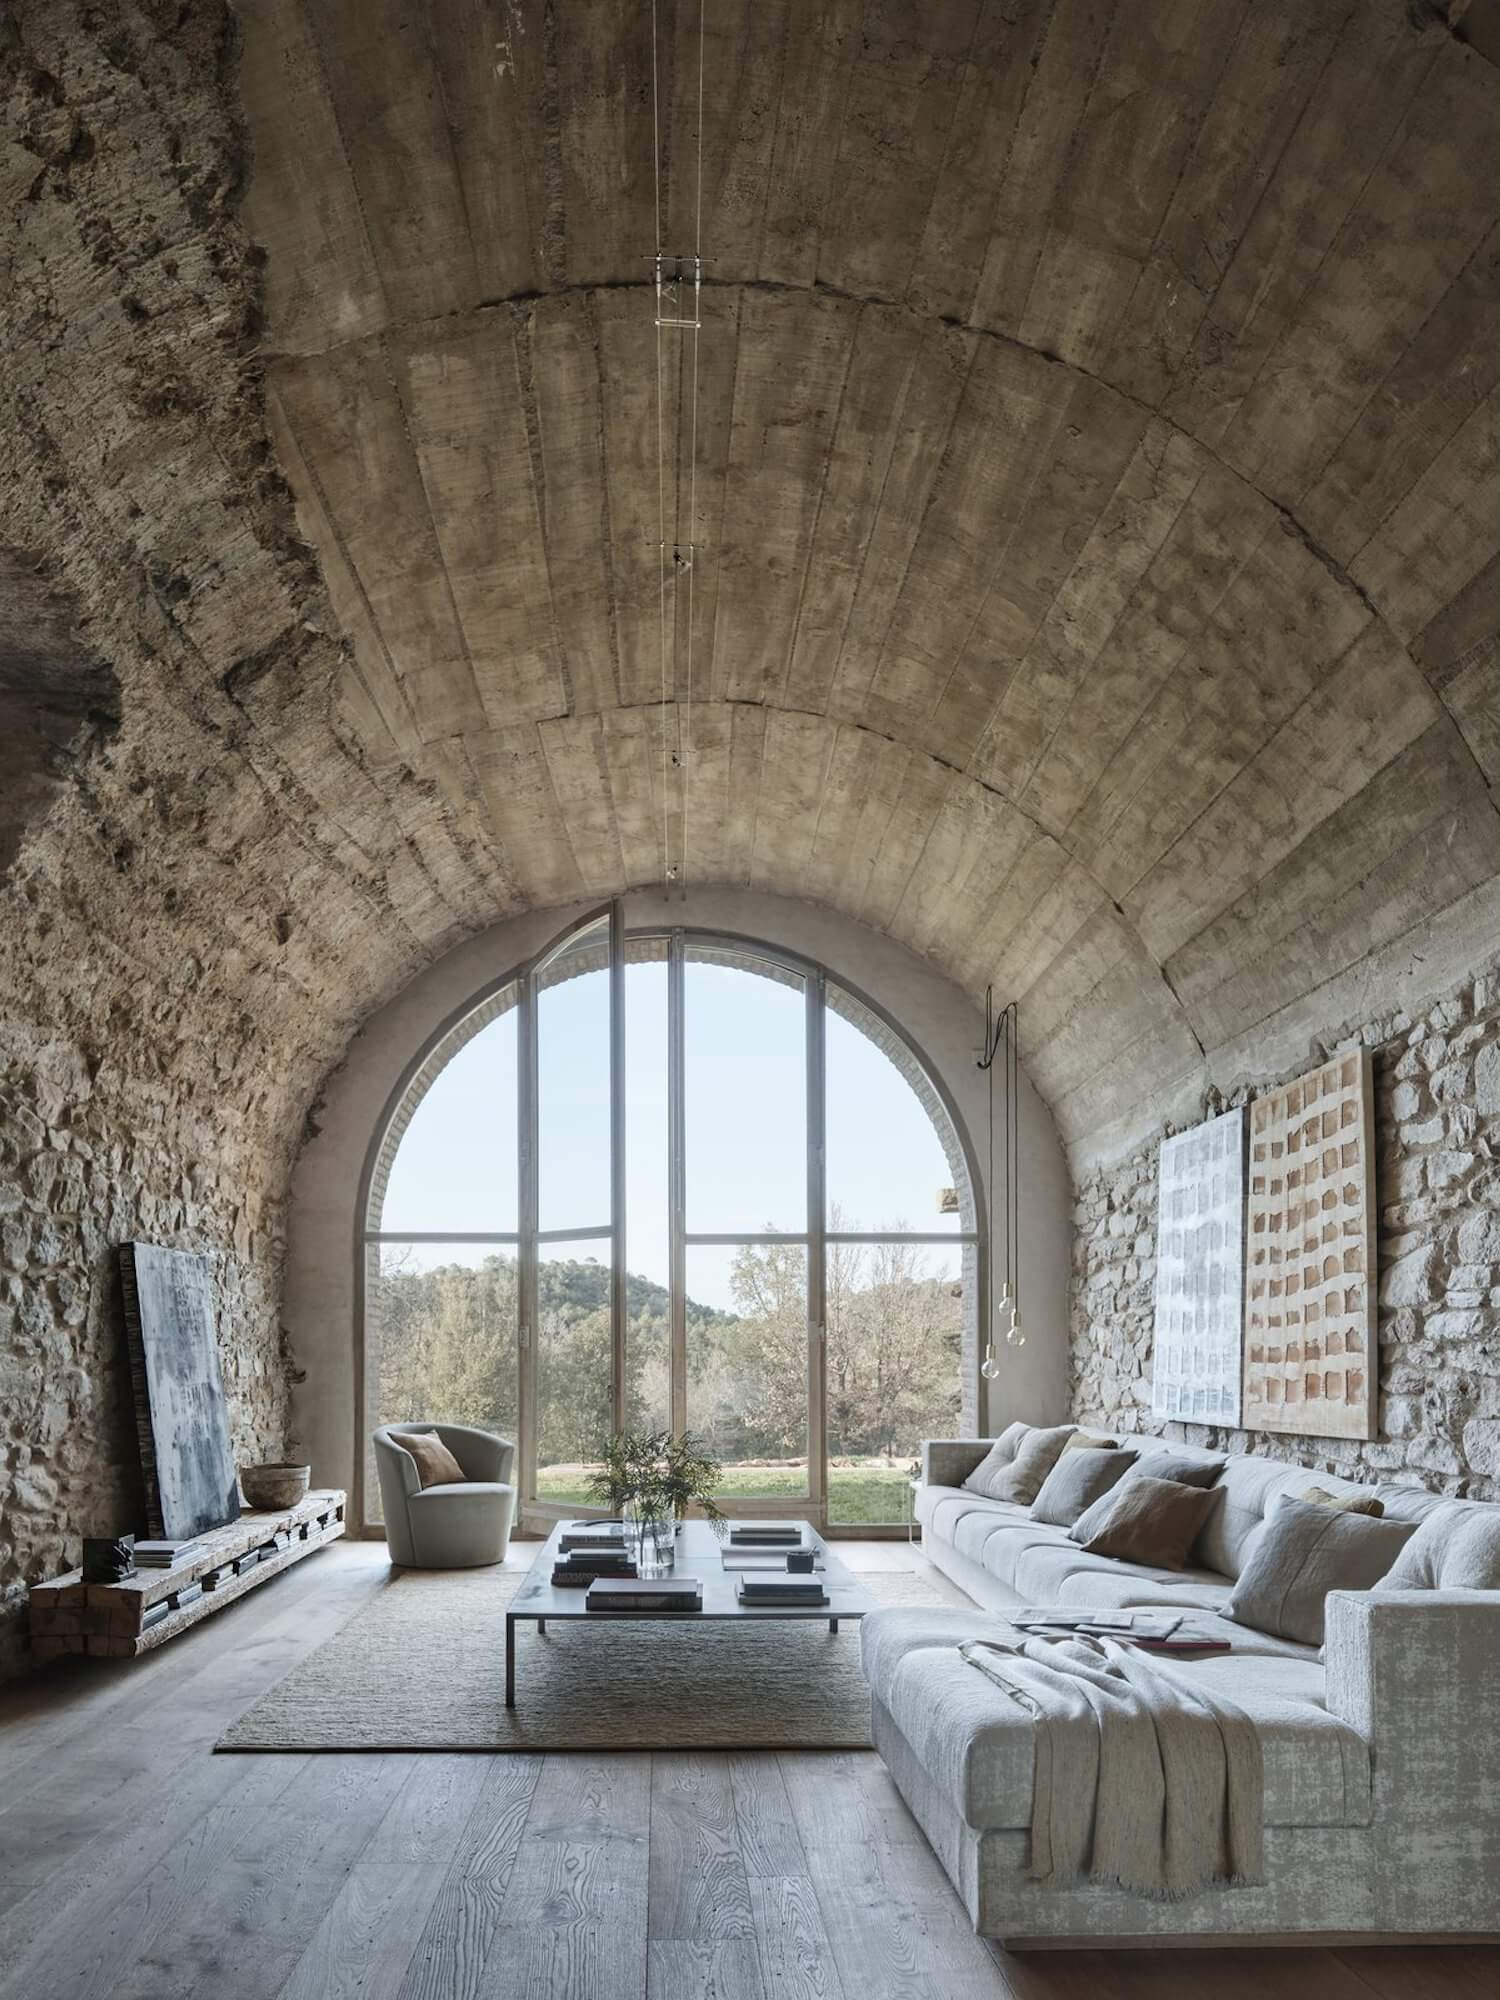 Catalonian Farmhouse Est Collection: Rural Spanish Retreats